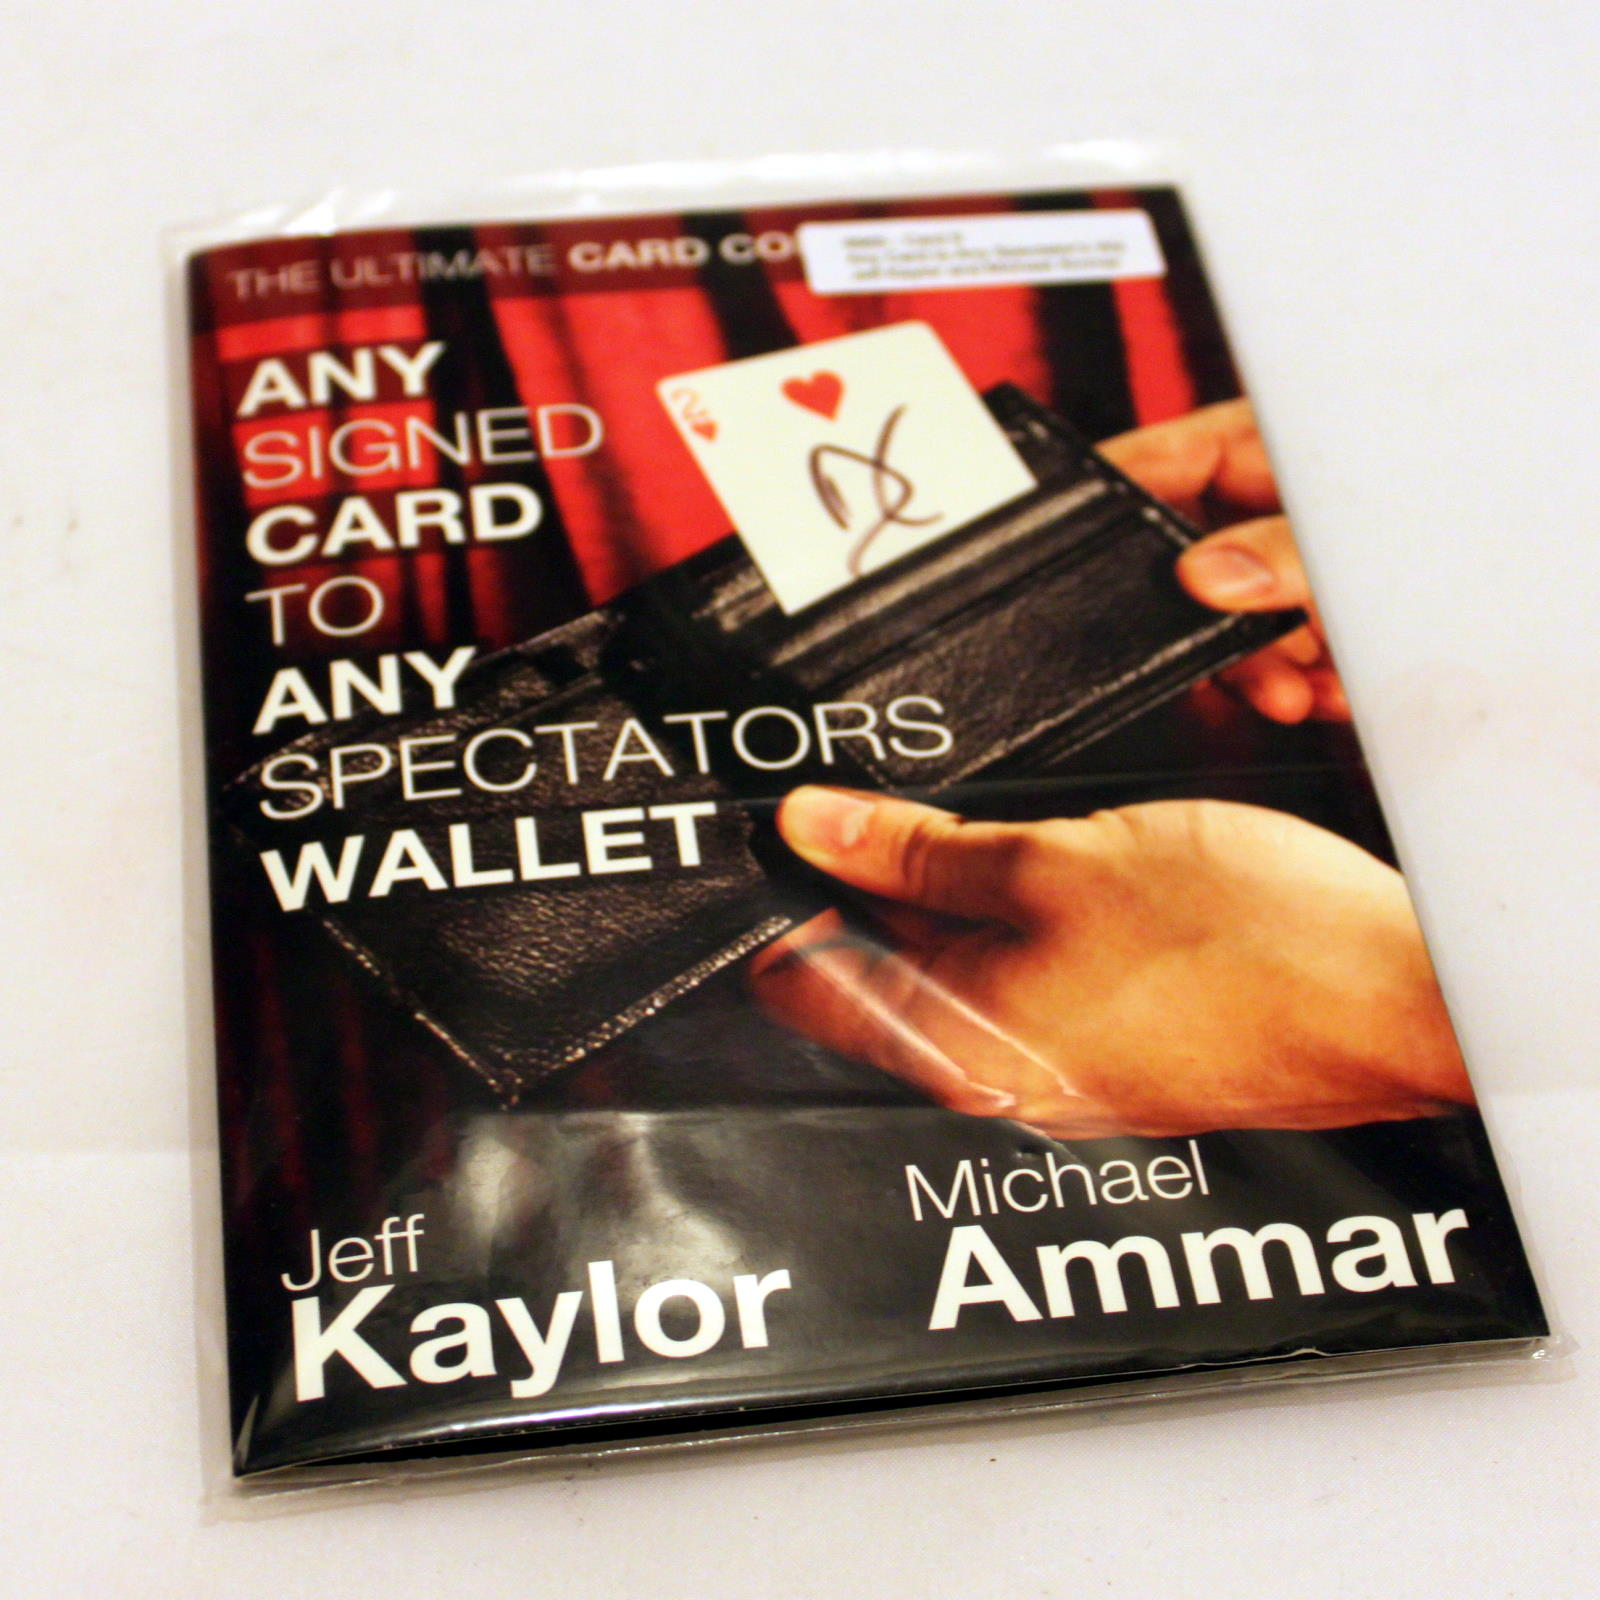 Any Signed Card to Any Spectators Wallet by Jeff Kaylor, Michael Ammar